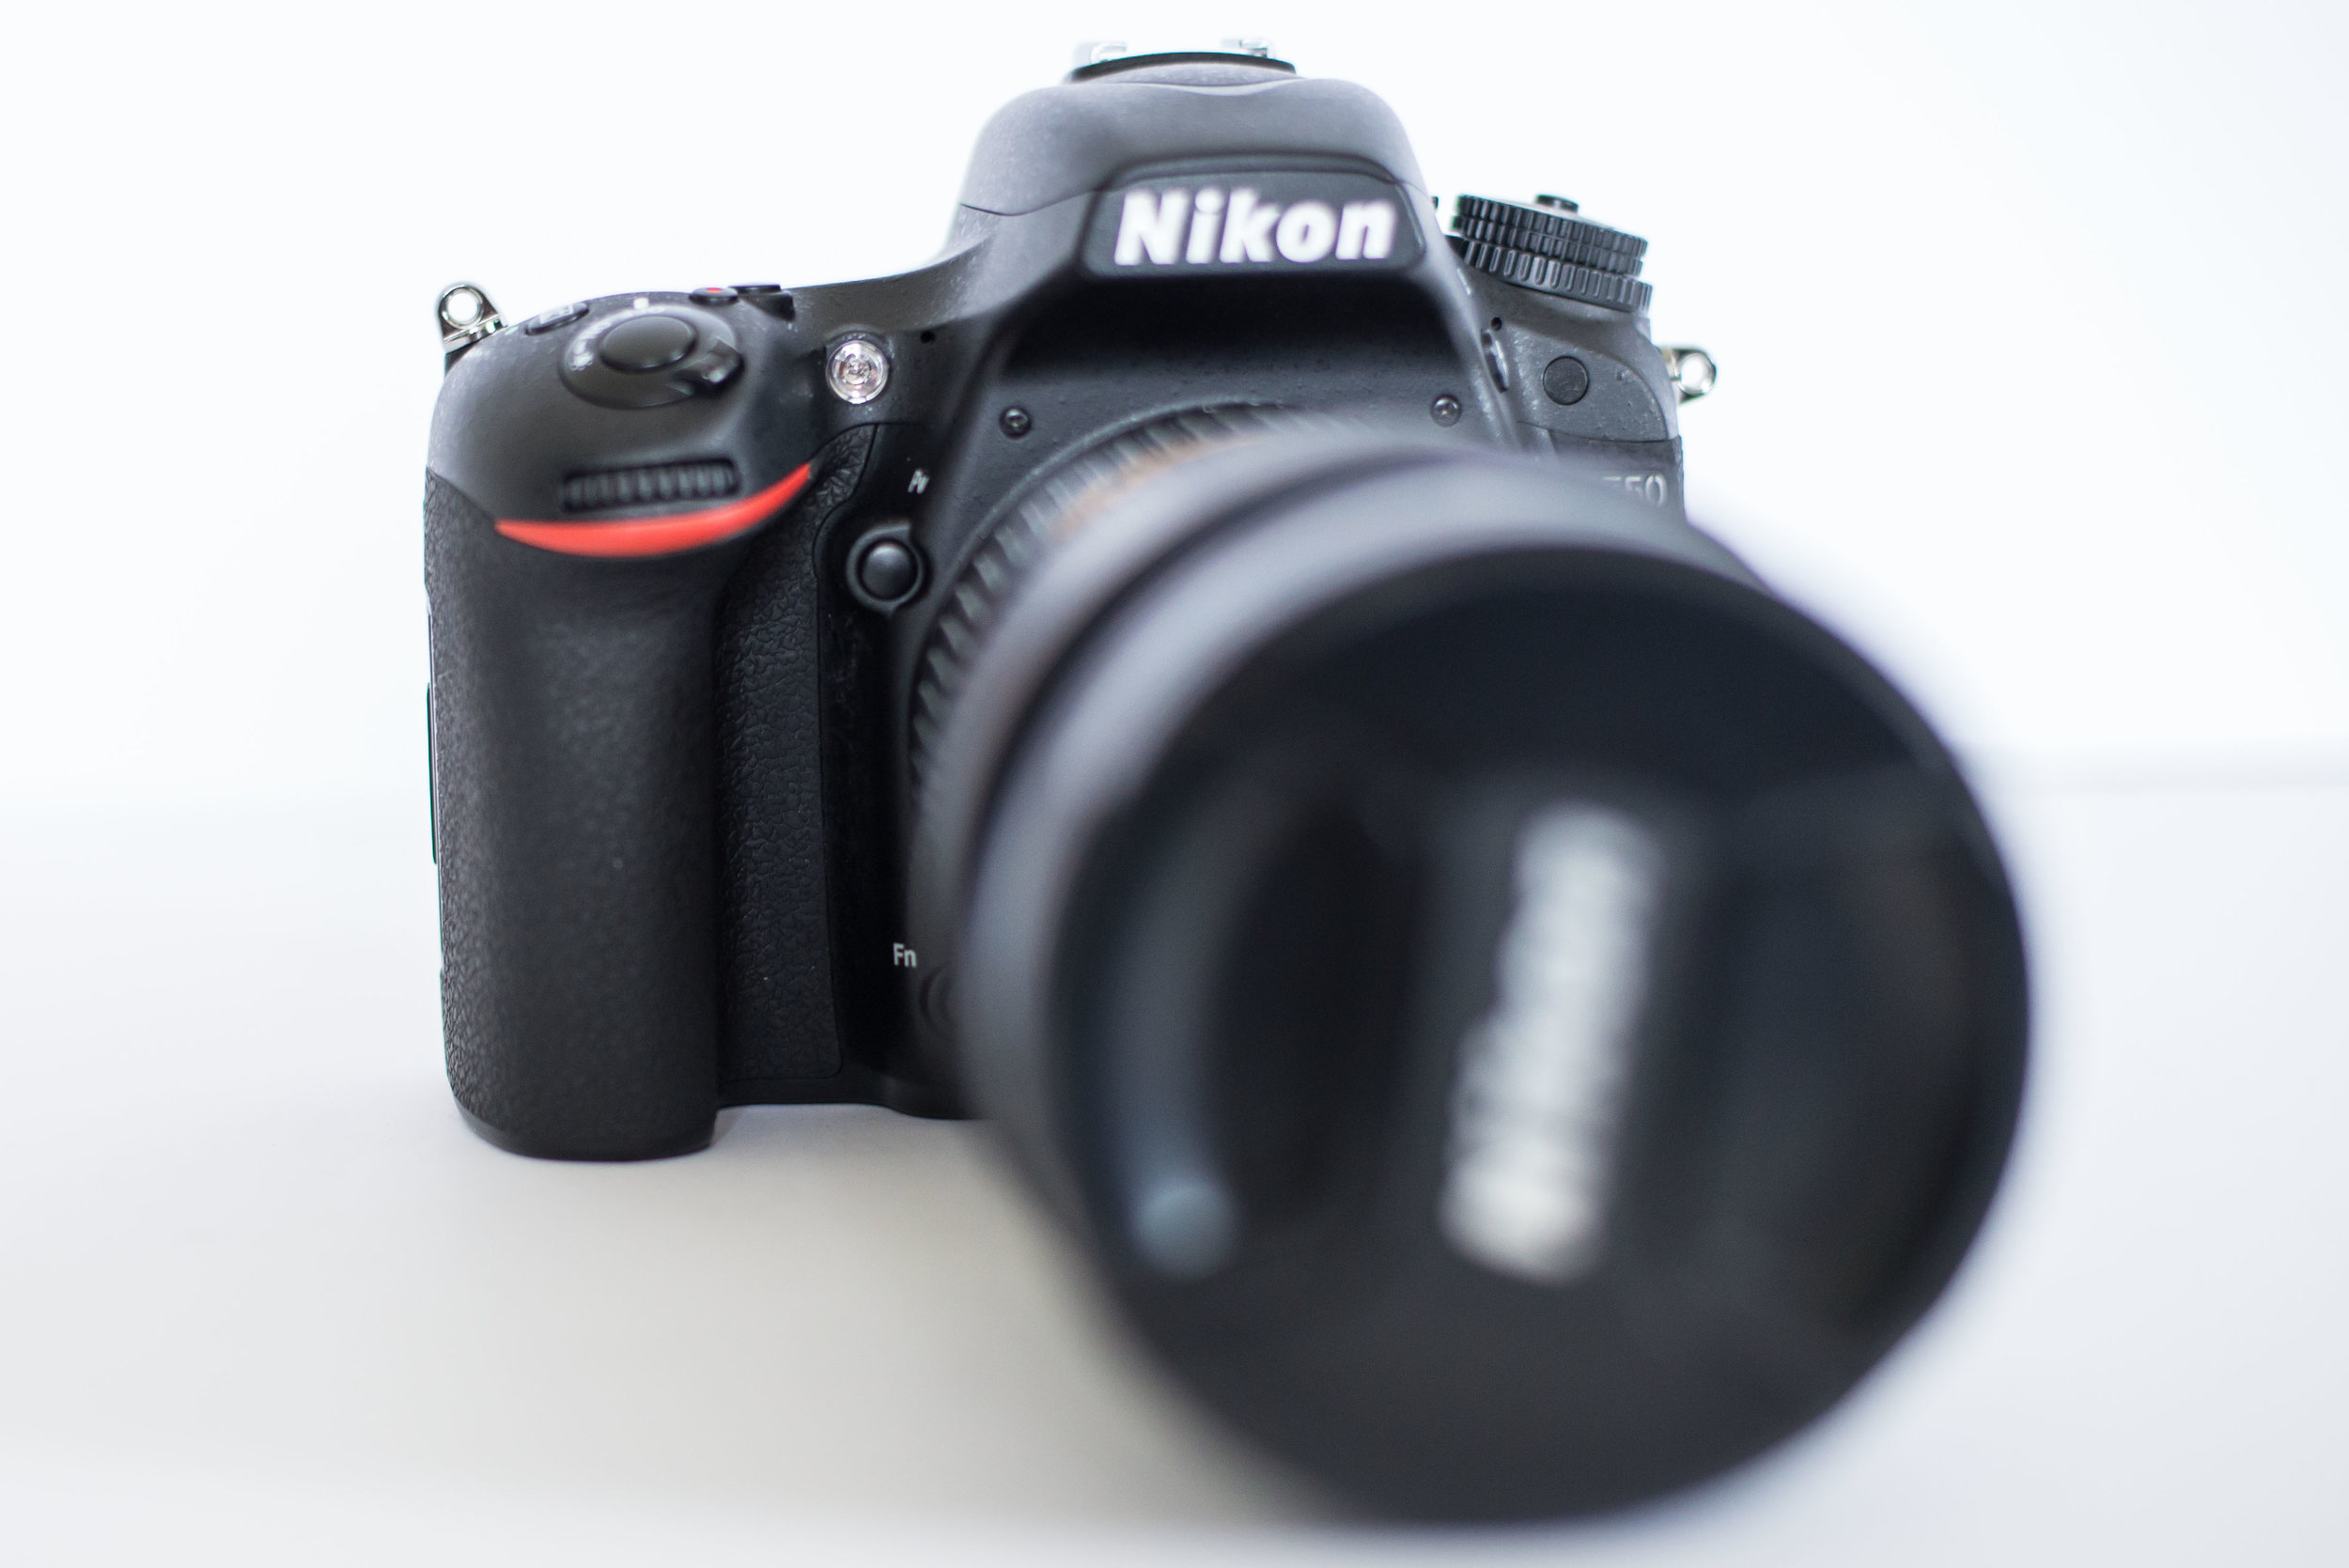 Nikon D750 for wedding review1 (1).jpg